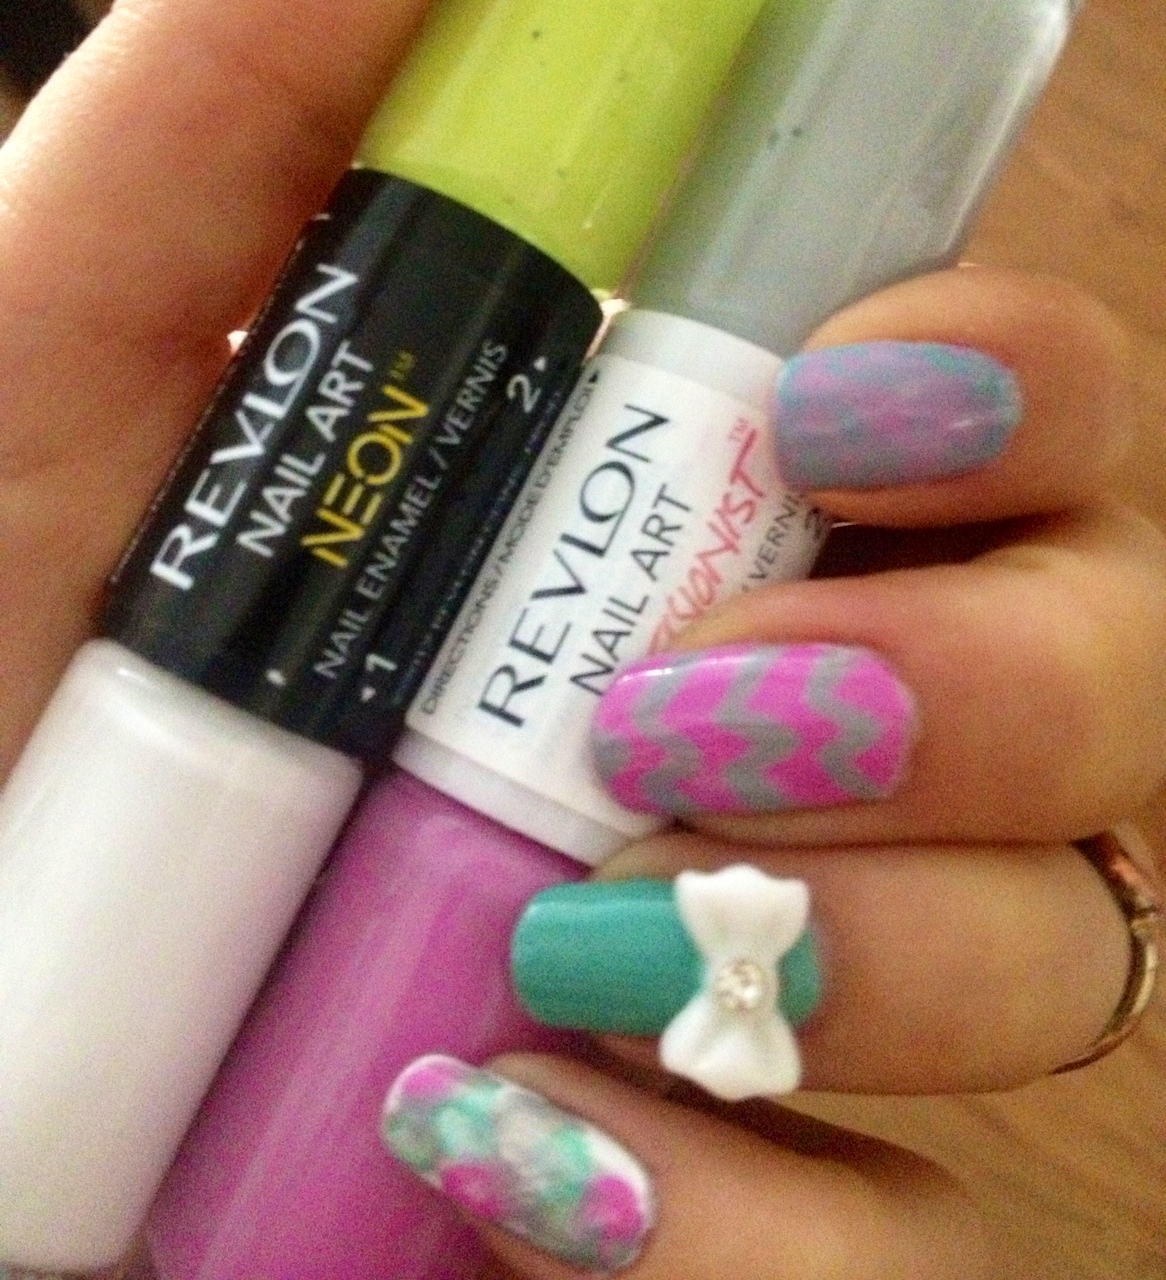 Nail art neon a 53 perspective revlon nail art collection prinsesfo Gallery